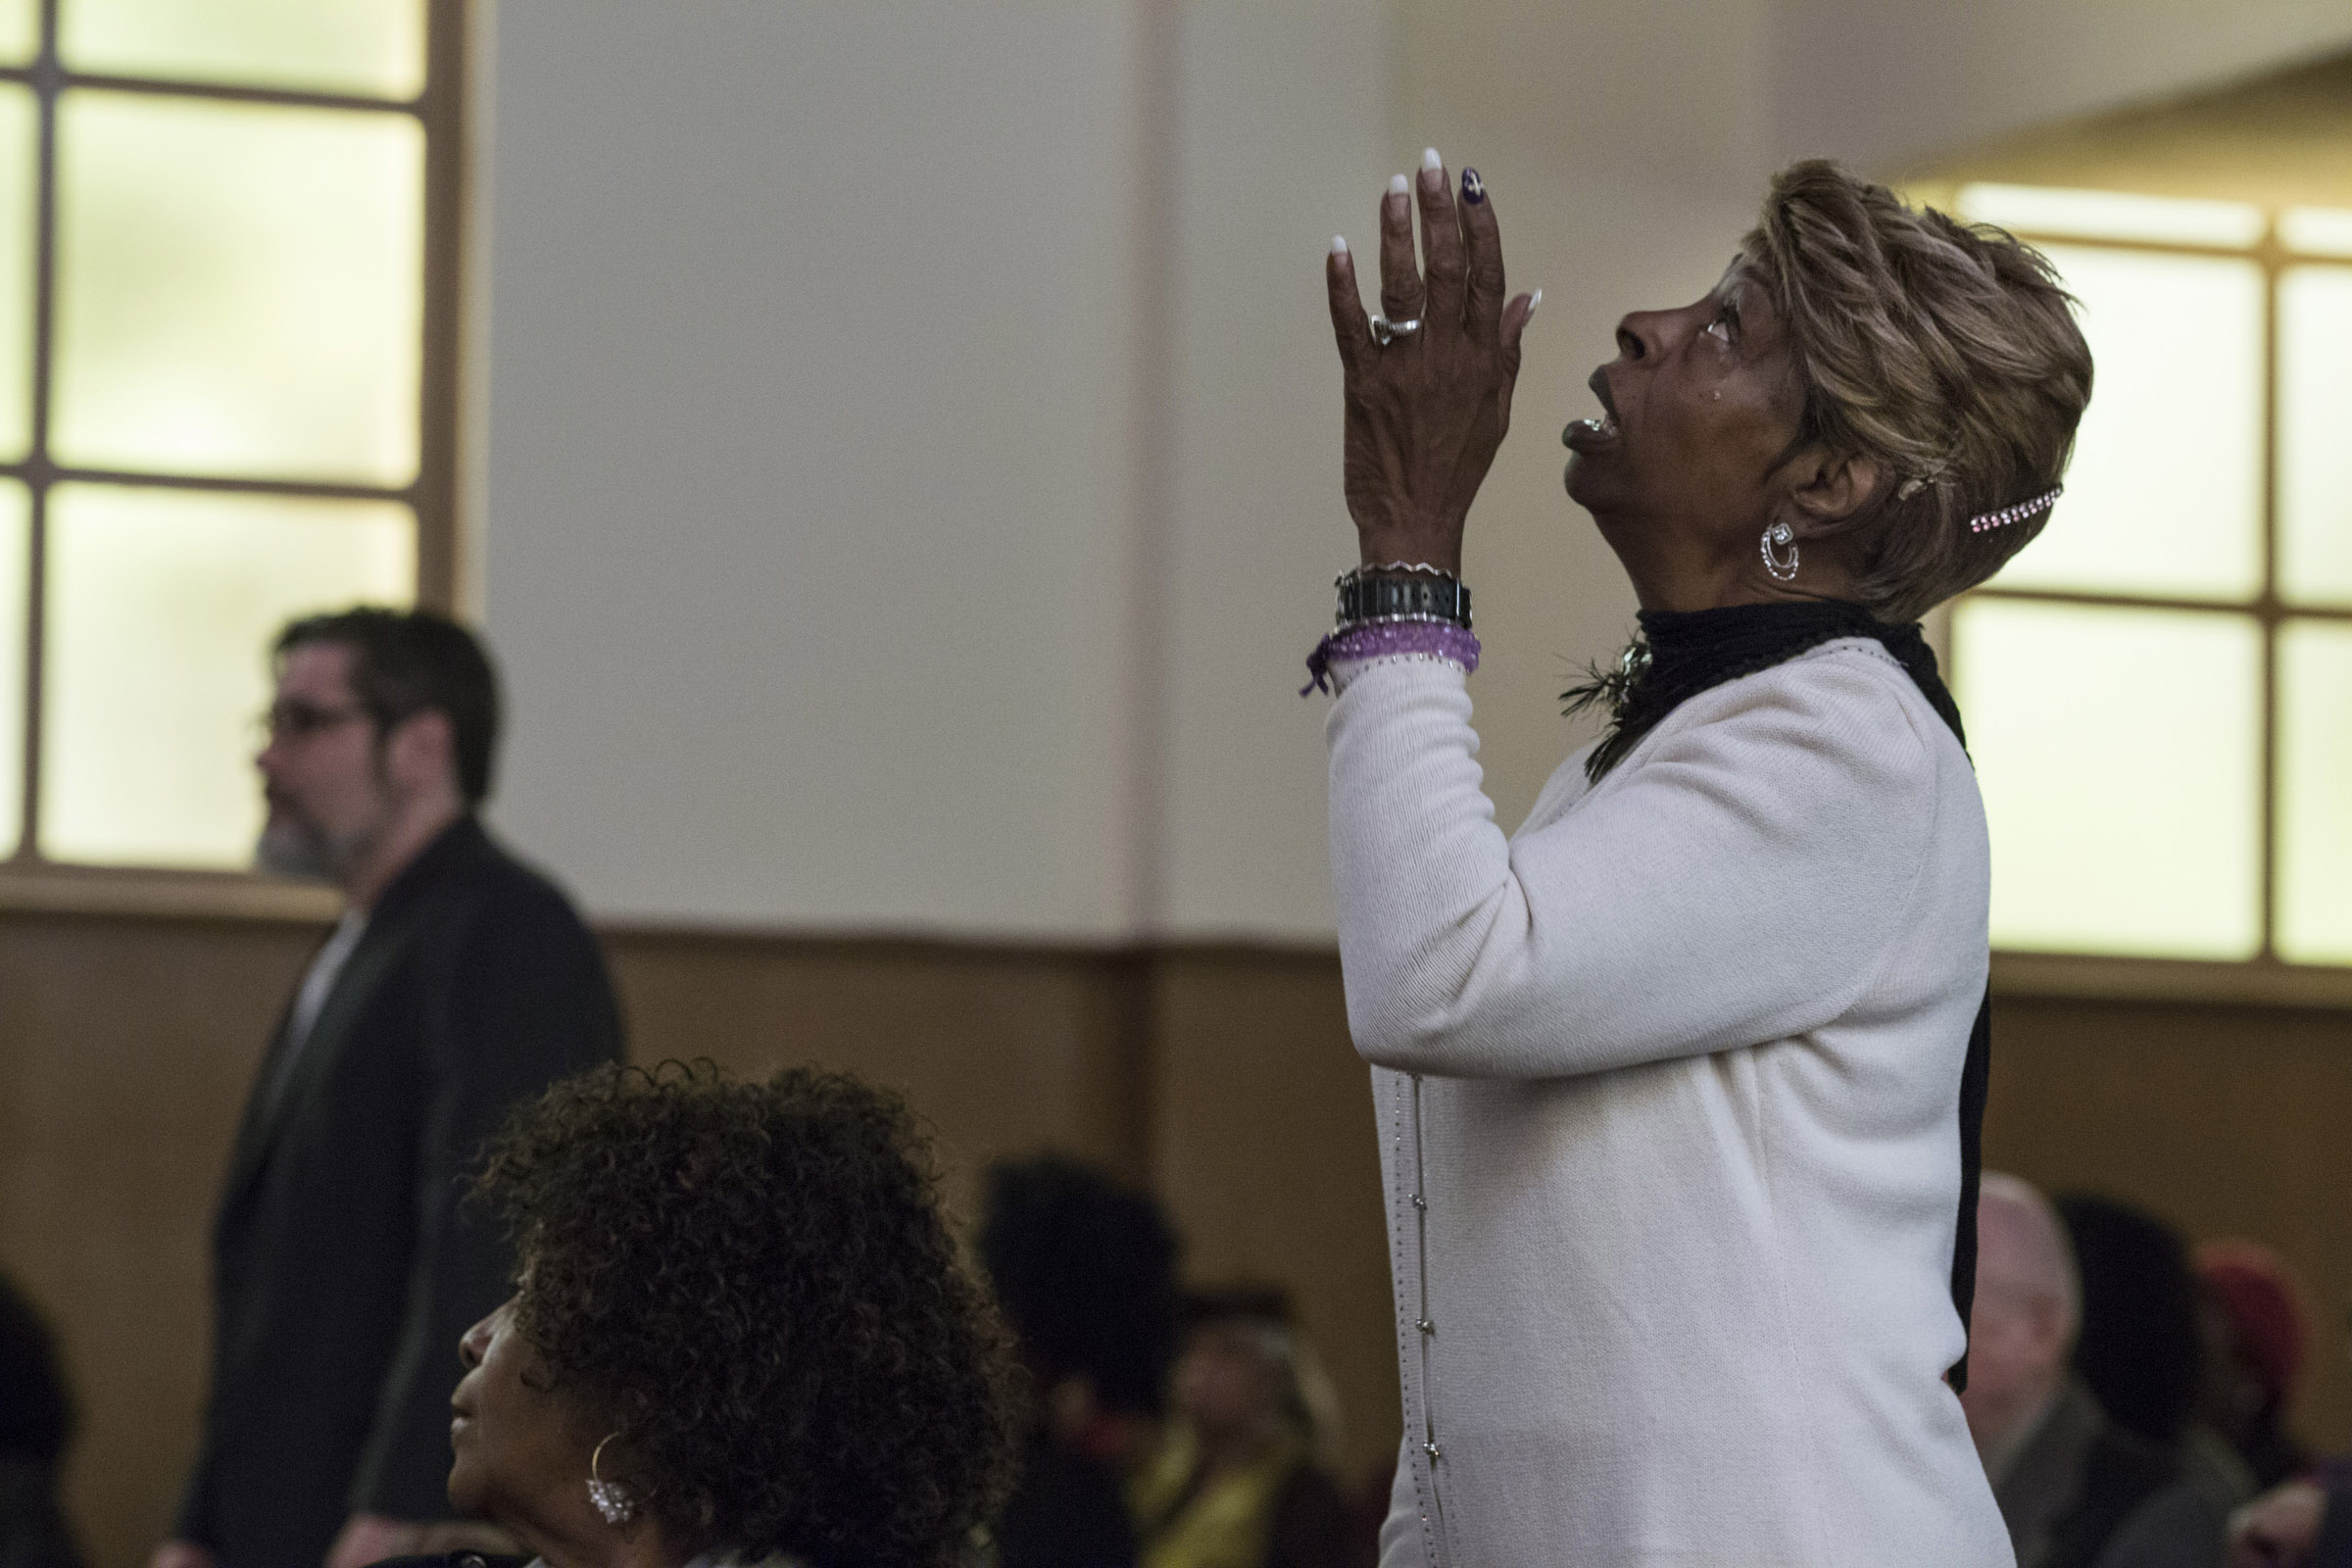 Elaine Buchanan, raises her hands in praise during the service at the Third Baptist Church in the Fillmore district of San Francisco, California, on Sunday, November 5, 2017. (Photo by Brittany Greeson)